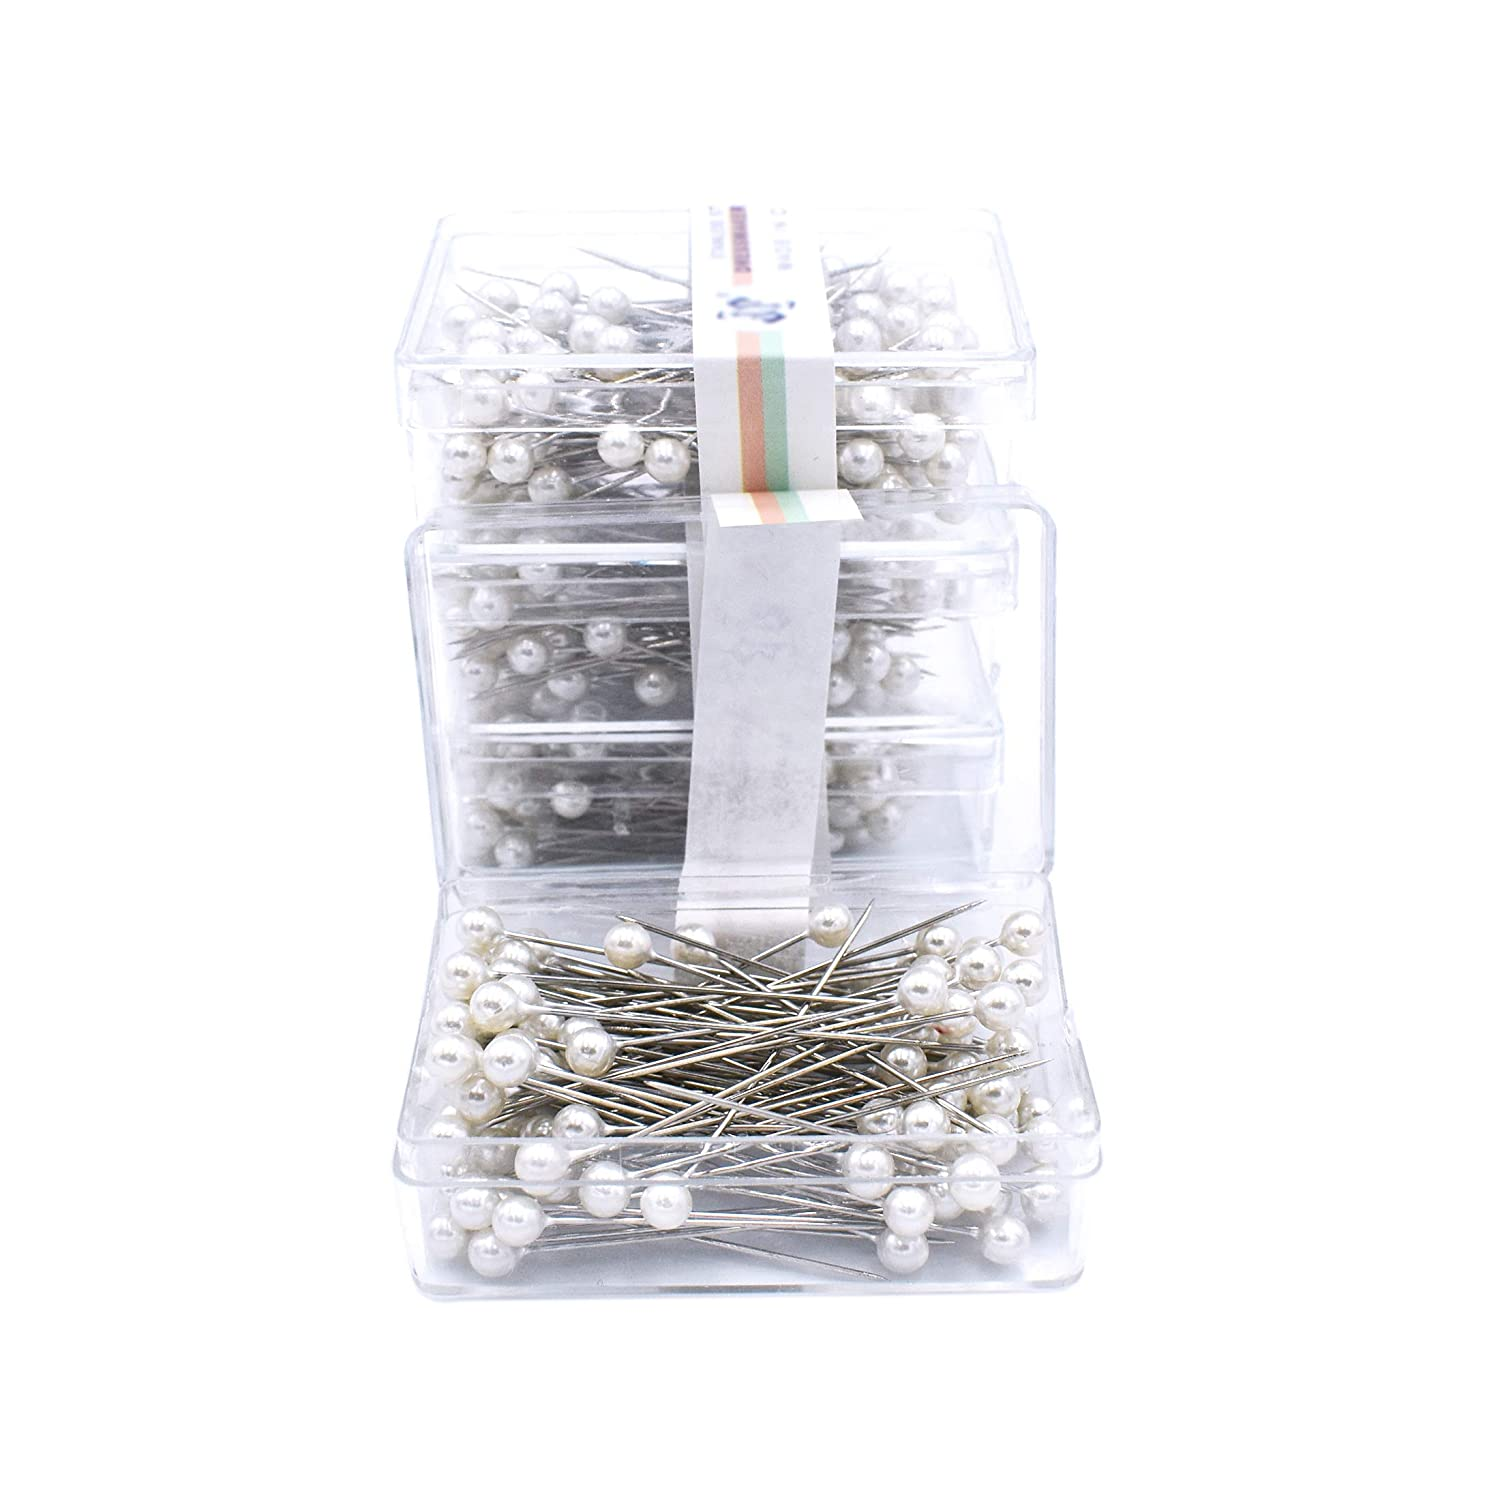 Firefly 400 Pcs White Color Straight Pins 1.5 Pearlized Ball Head for Sewing Quilting and Craft Decoration